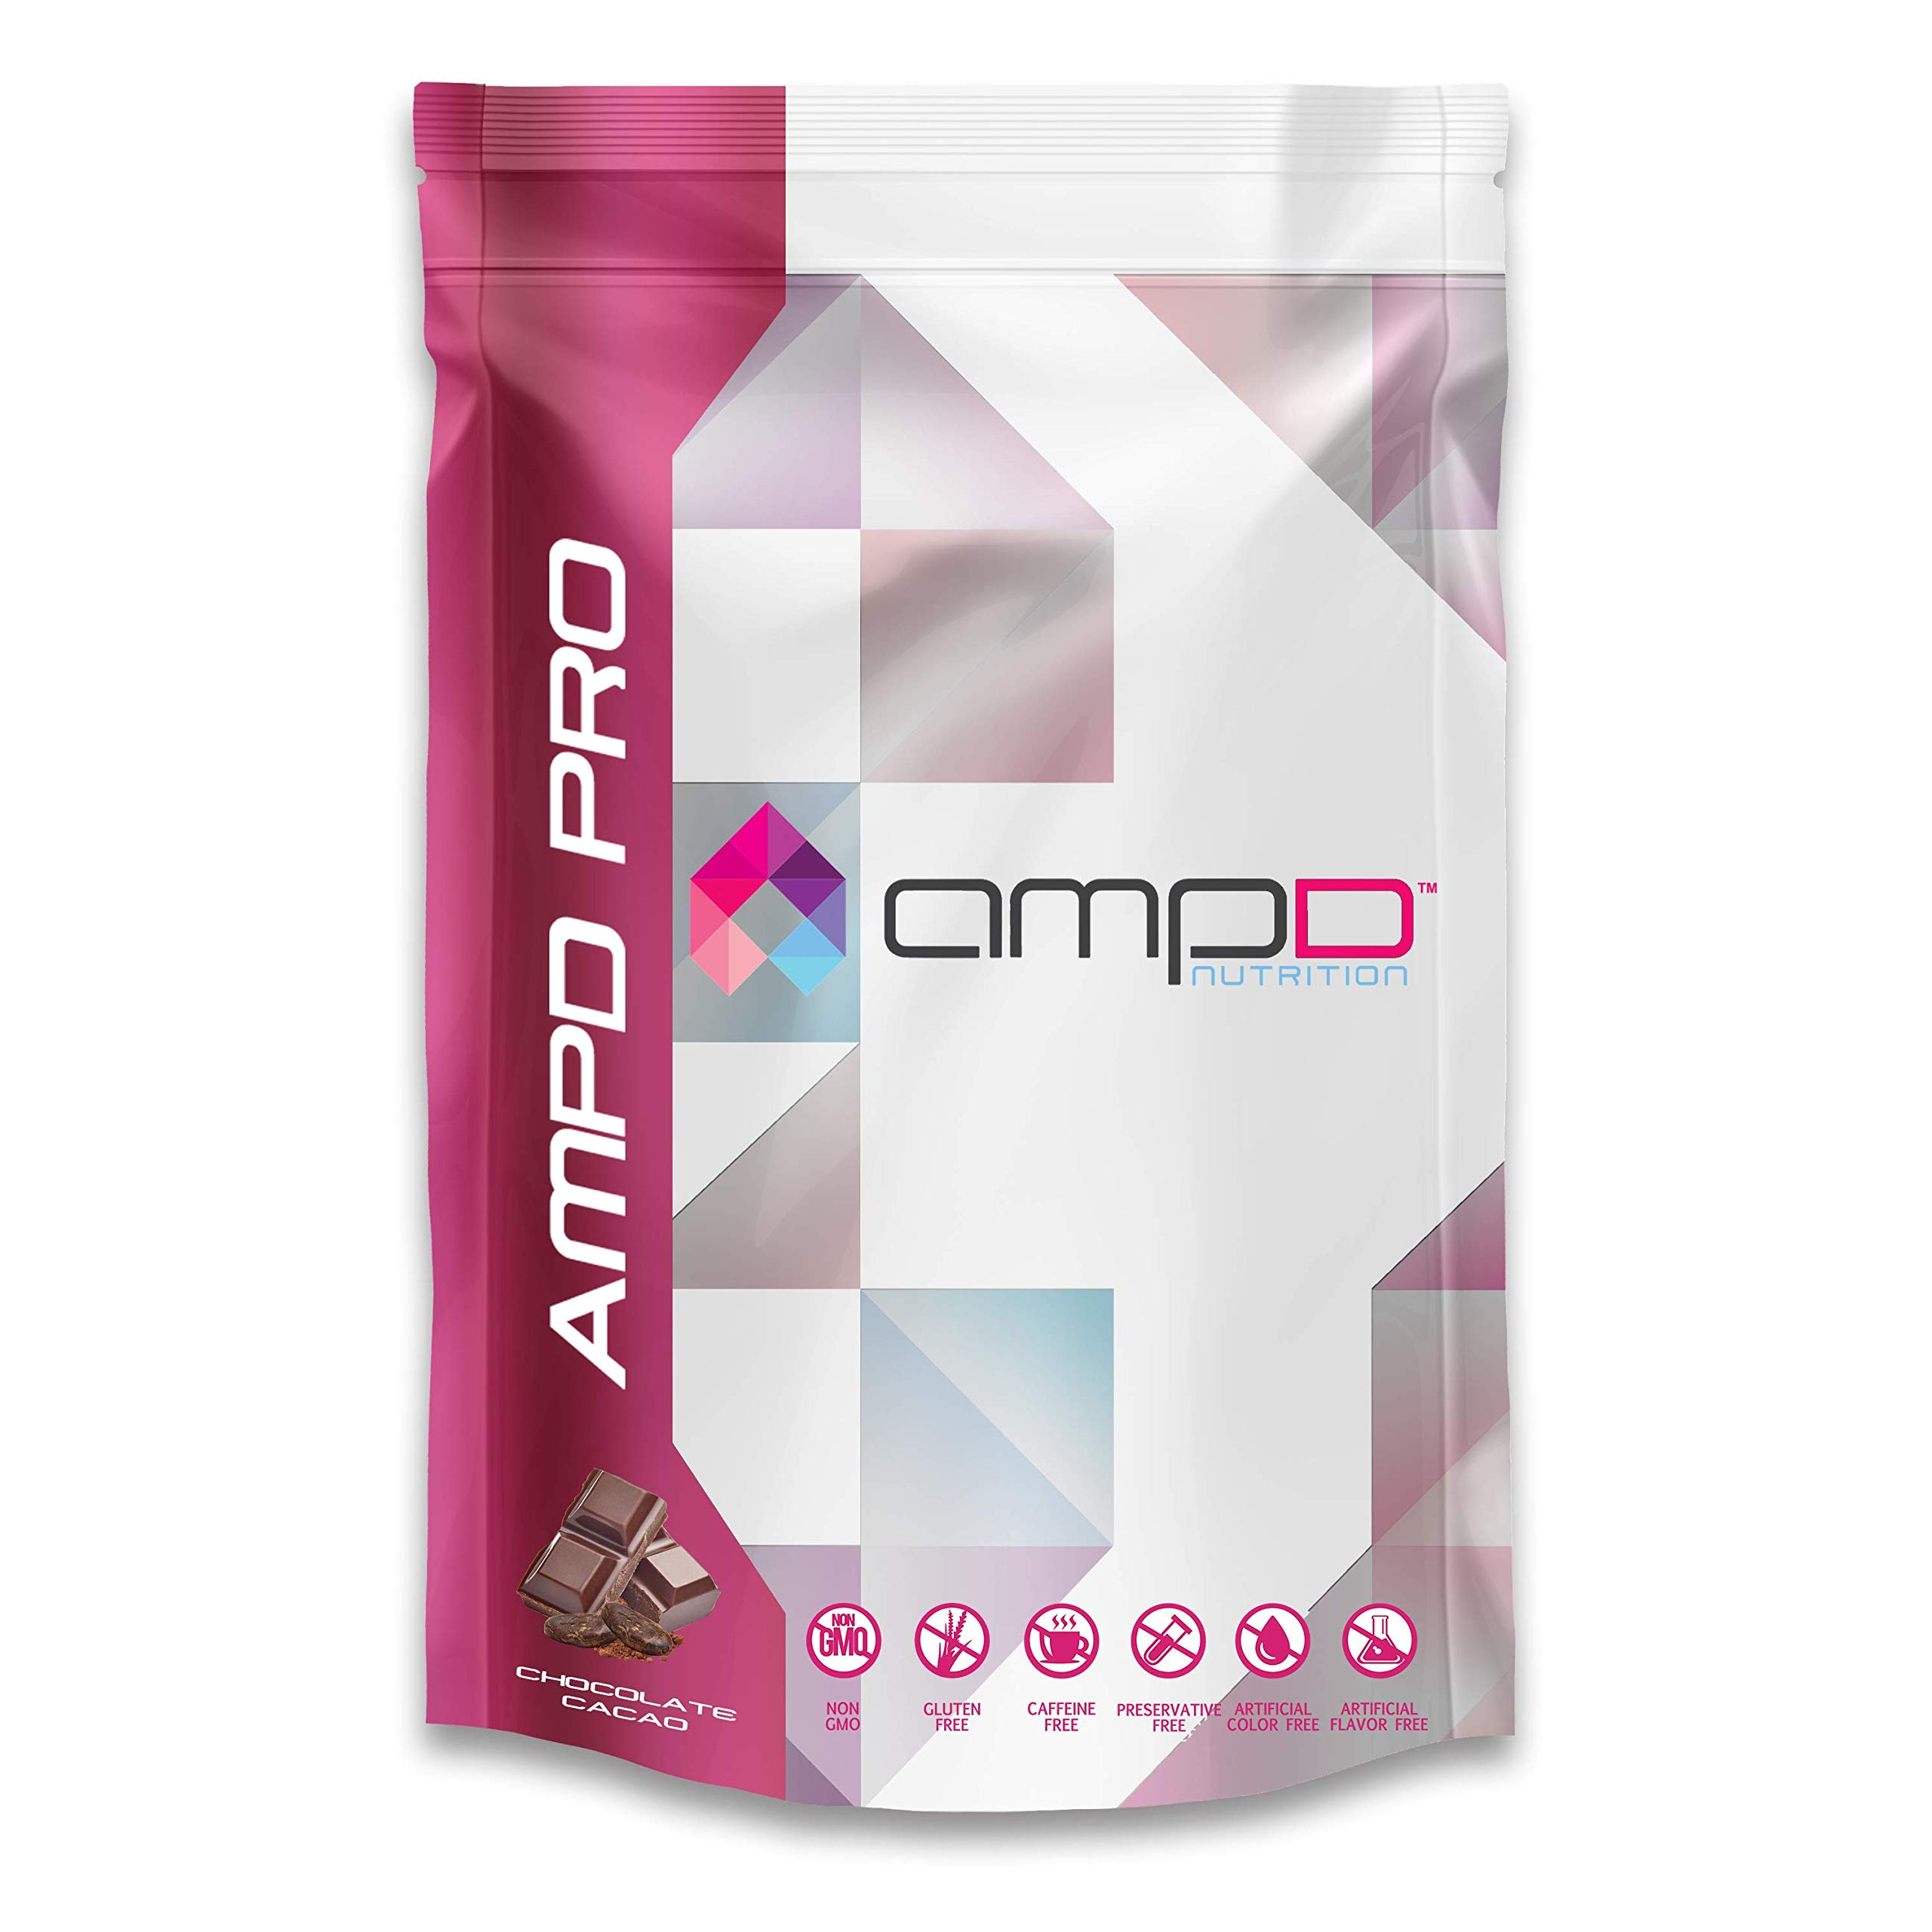 AMPD Pro (810 Grams - 30 Servings) Chocolate Cacao - 20g Plant Based Protein Powder from Pea, Rice, Chia - Vegan Friendly, 3g Fiber, Omega-3's, Multi-Vitamin Plus Biotin ...